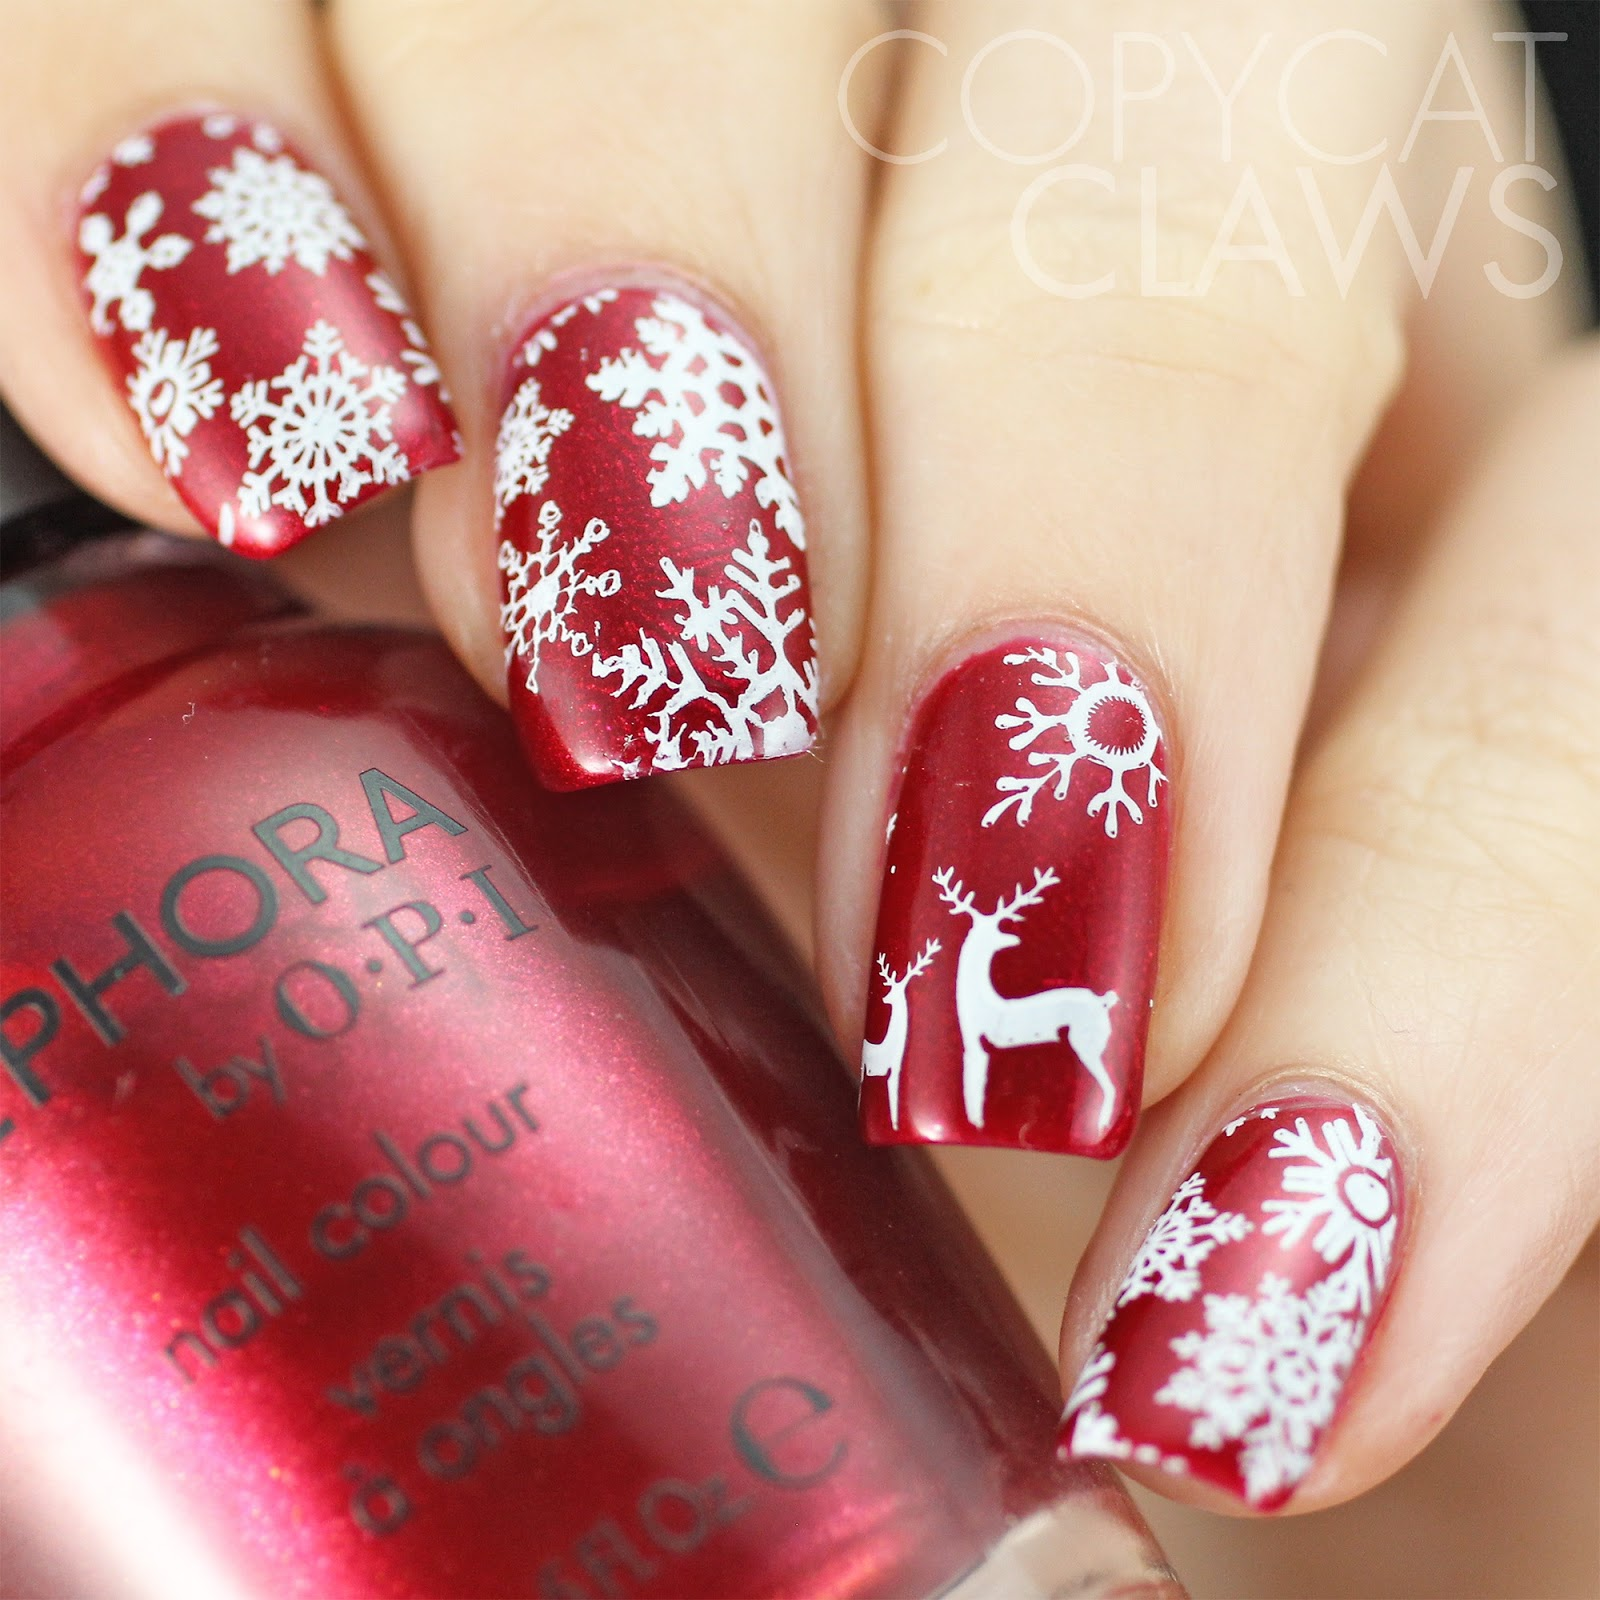 Copycat claws simple christmas nails a very merry holiday to you and yours i hope you can surround yourself with love and fun and good feelings and stay safe solutioingenieria Image collections